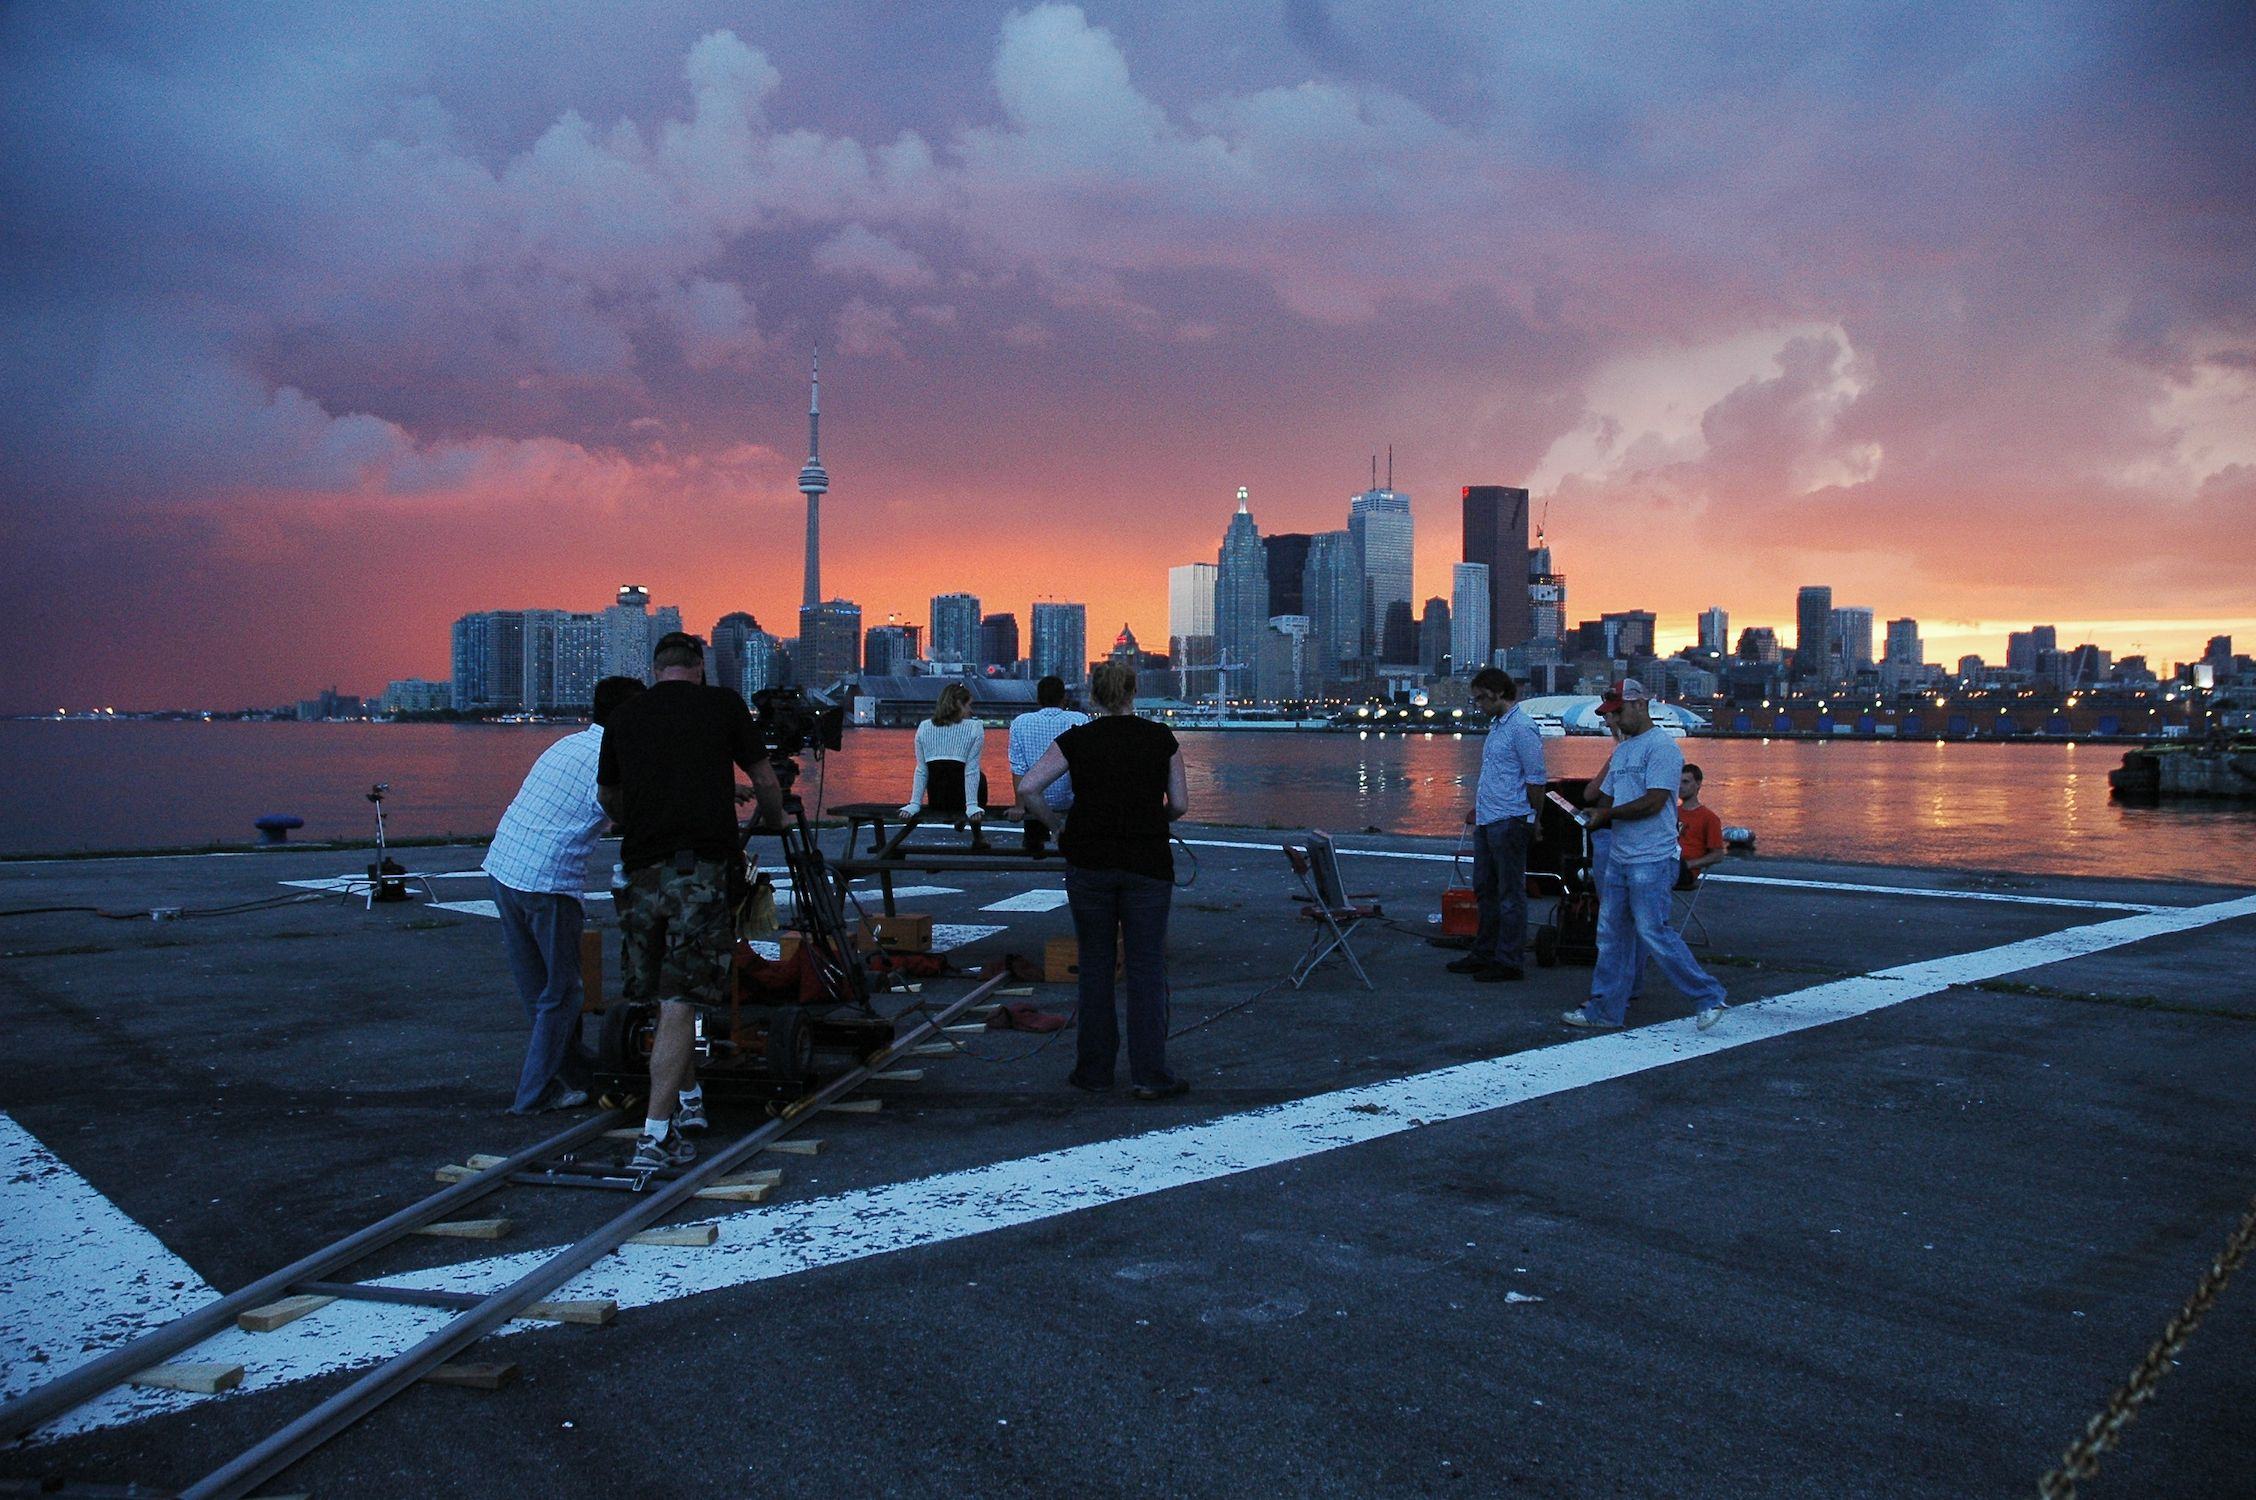 The Crew set up for a 45 minute time lapse shot over looking Toronto